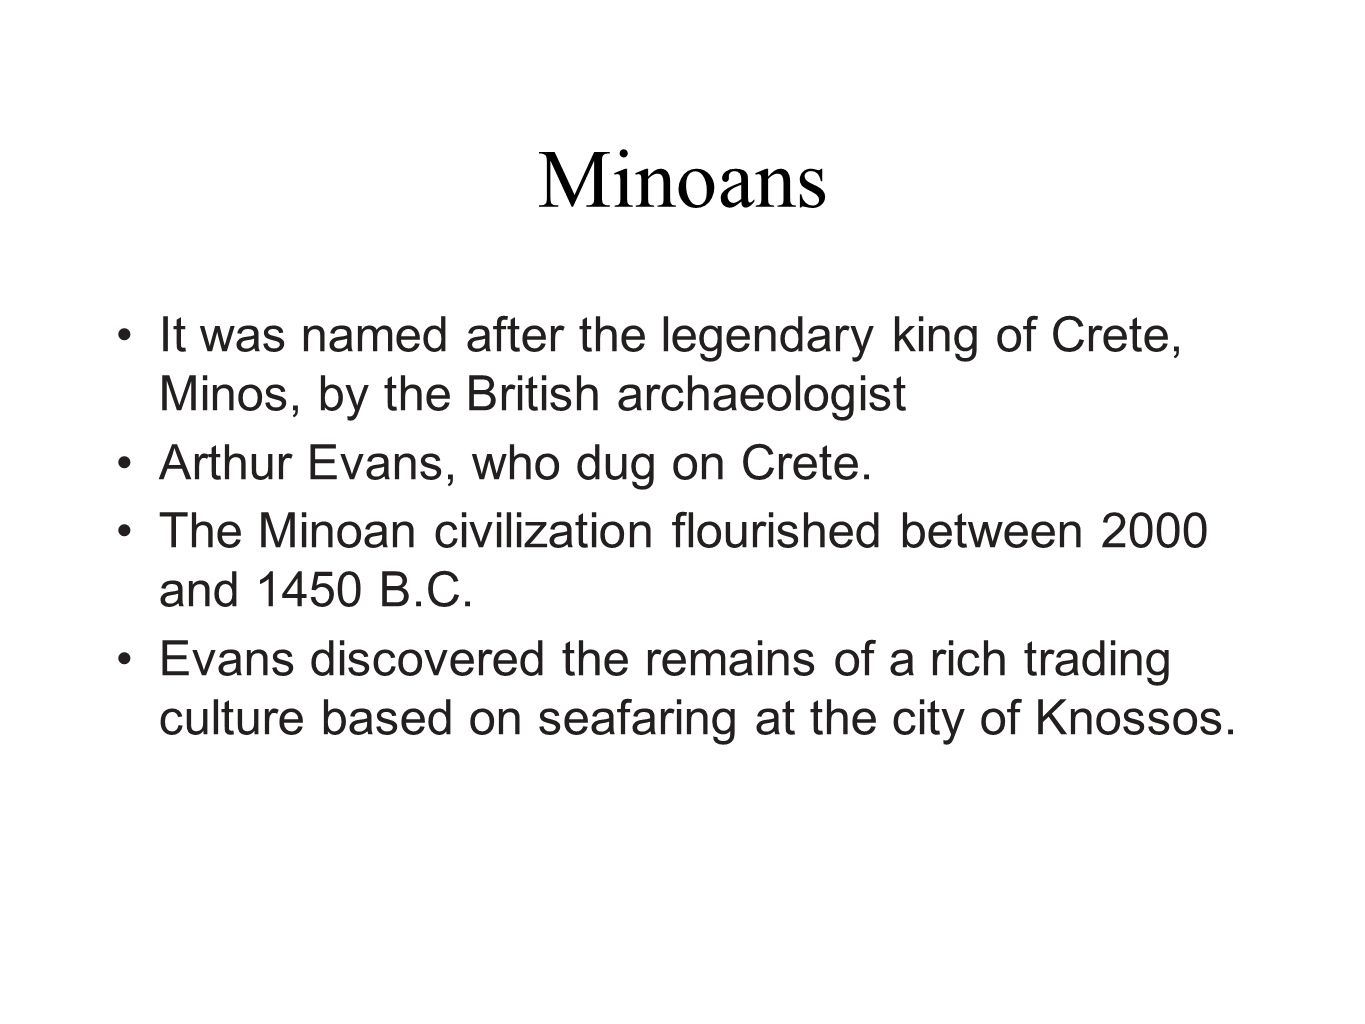 Minoans It was named after the legendary king of Crete, Minos, by the British archaeologist. Arthur Evans, who dug on Crete.